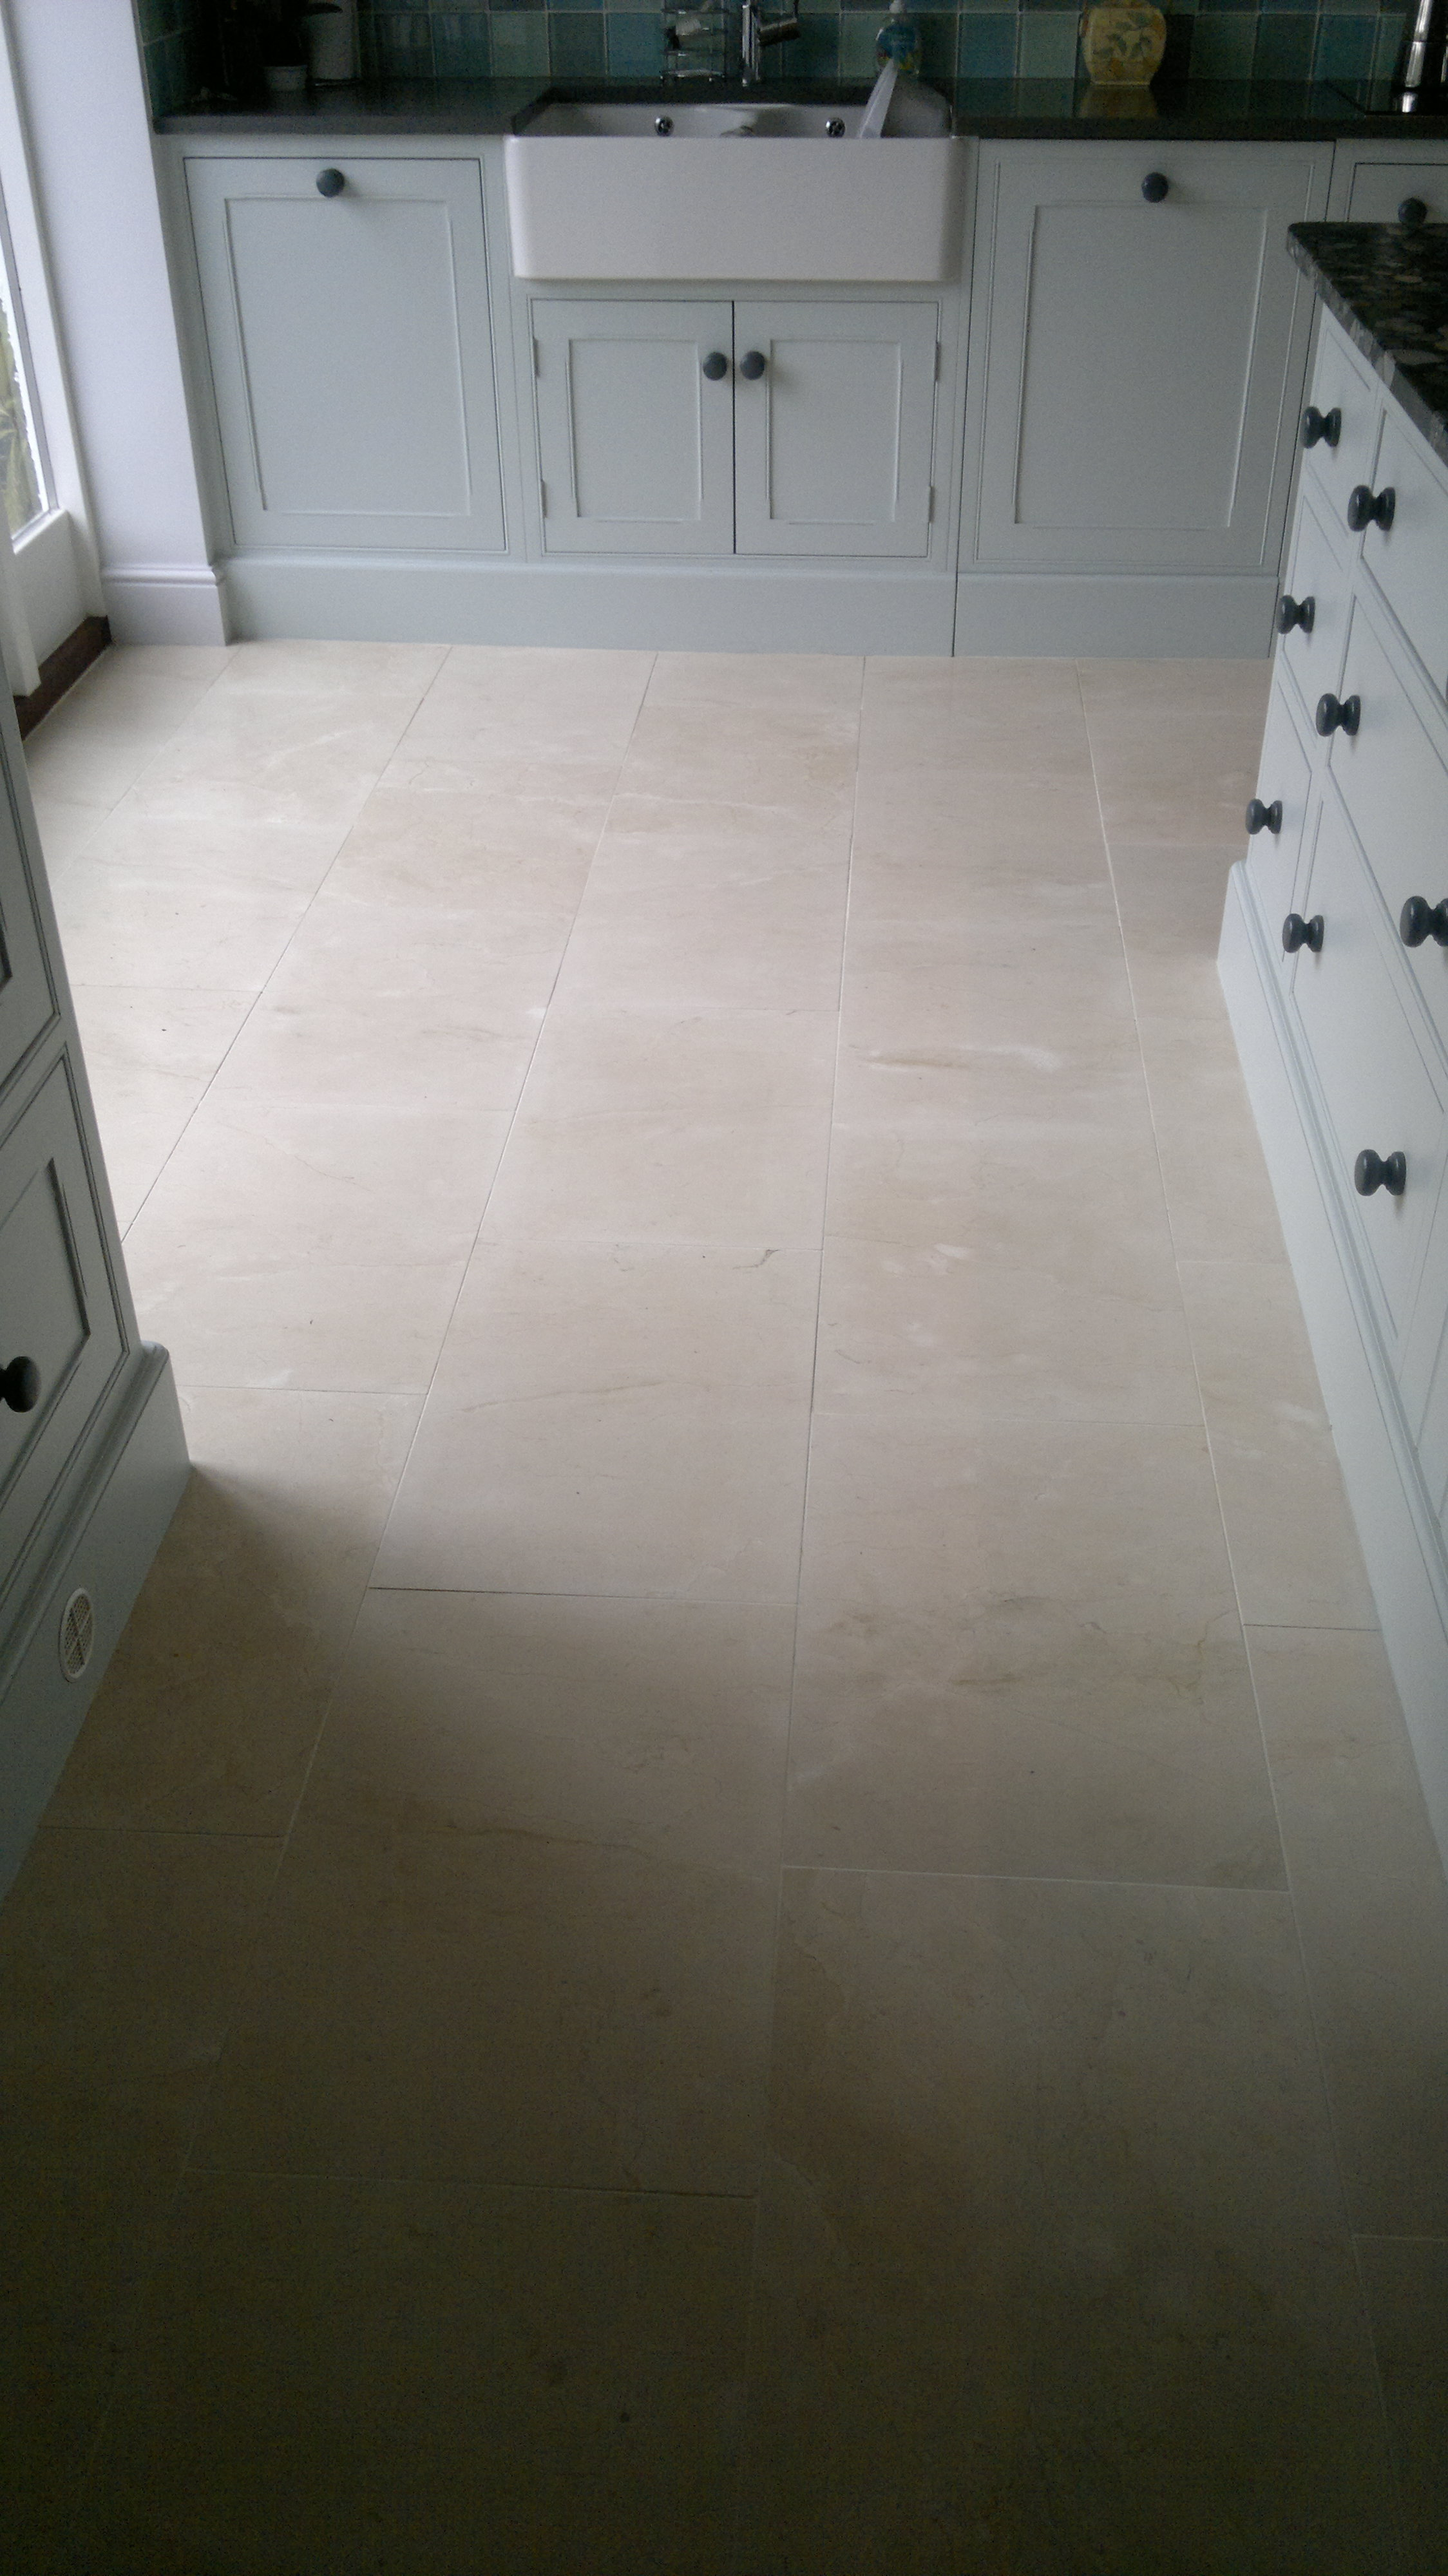 Maintaining the Appearance of Micro Porous Porcelain Tiles